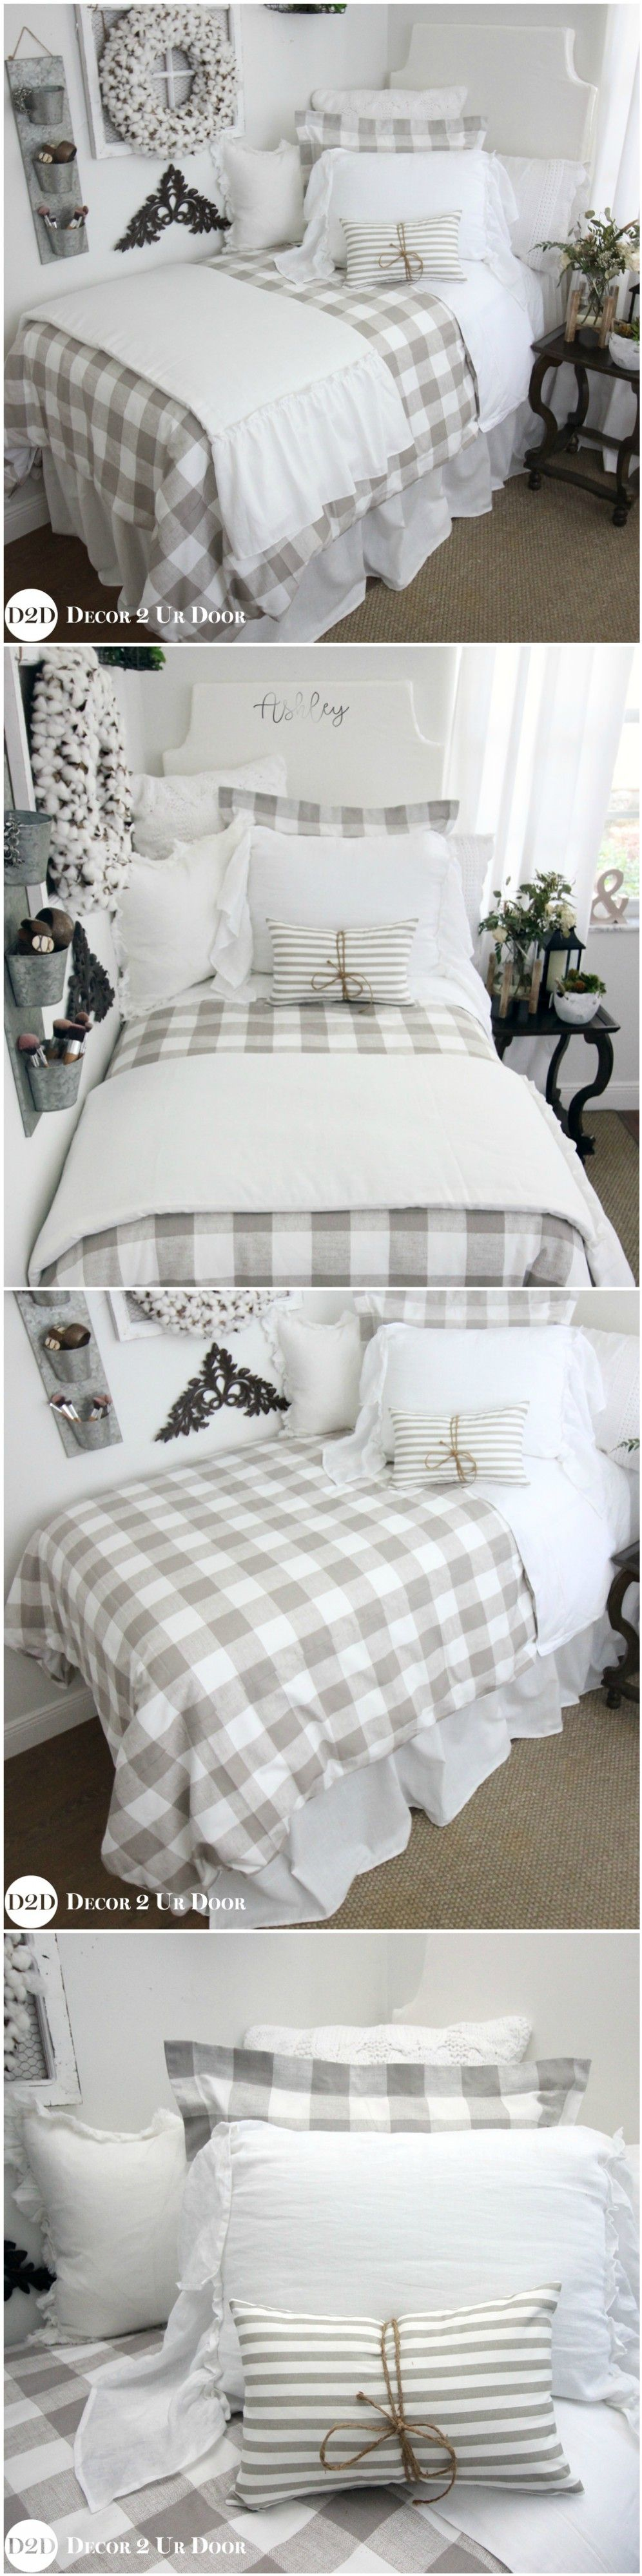 out with checkered comforter bedspread white red gingham amazing and sale literarywondrousd check comfy clear photo buffalo style literarywondrous ease bedding